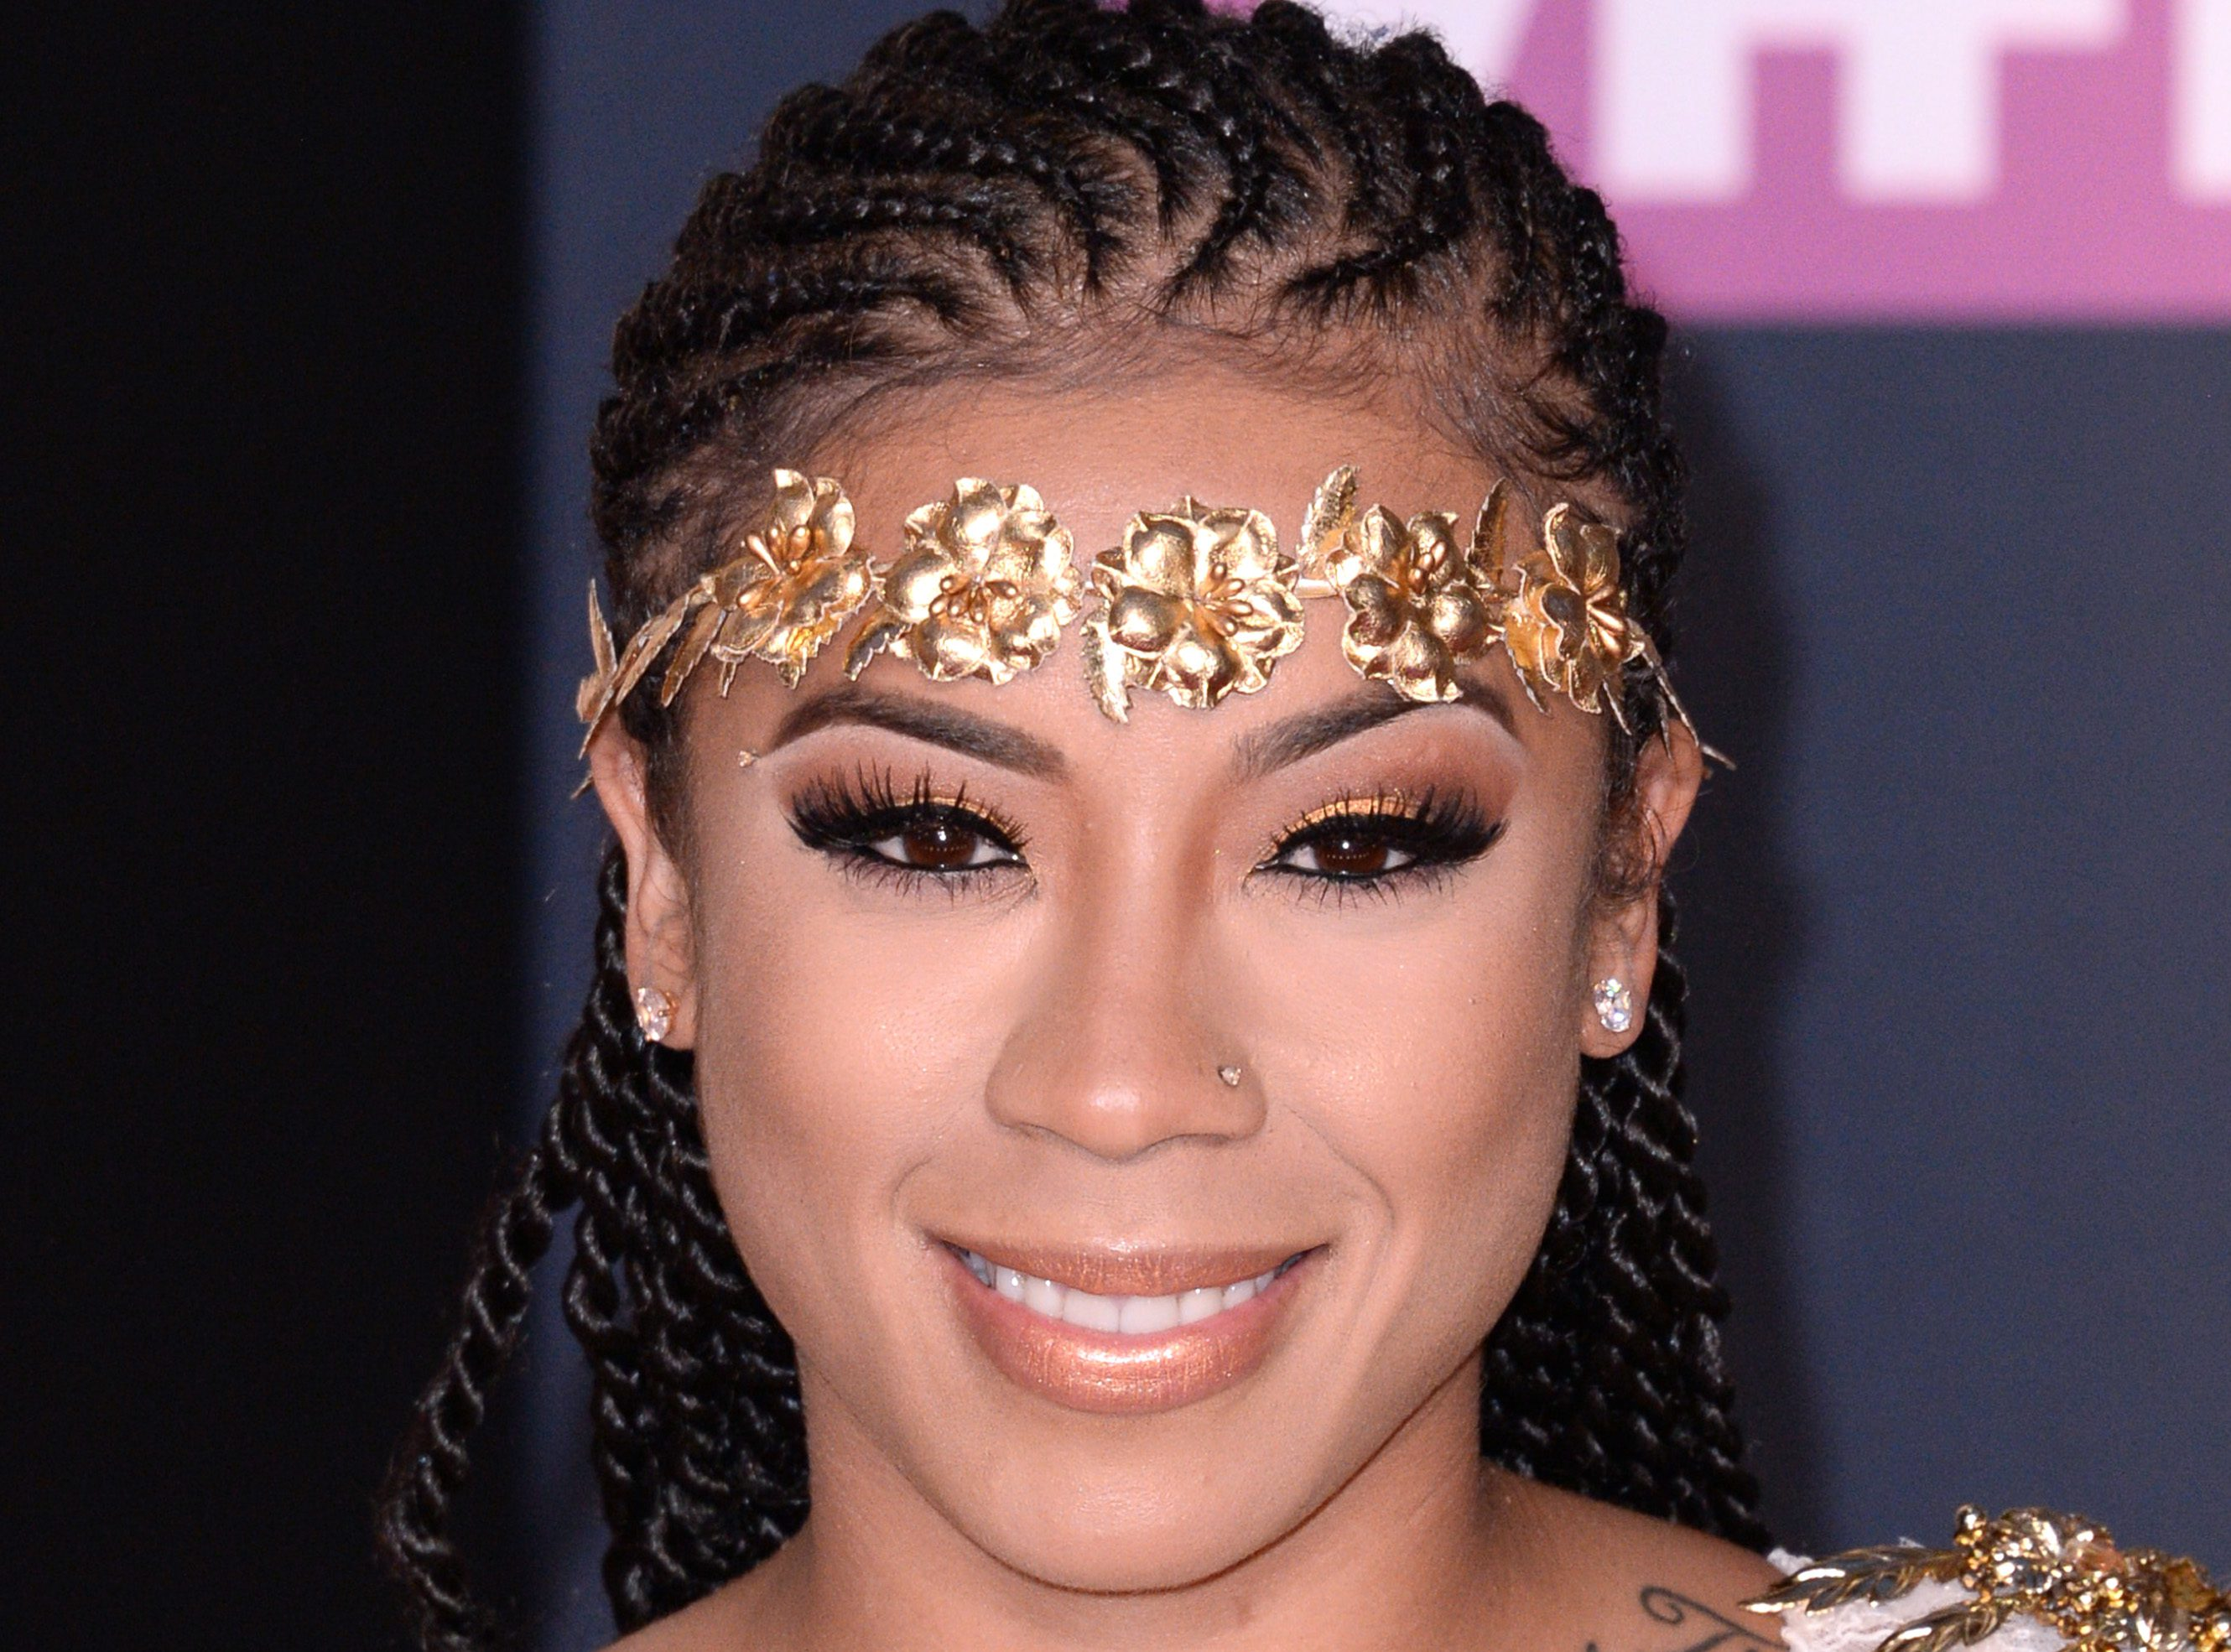 Images Keyshia Cole nude (84 foto and video), Ass, Hot, Instagram, braless 2018